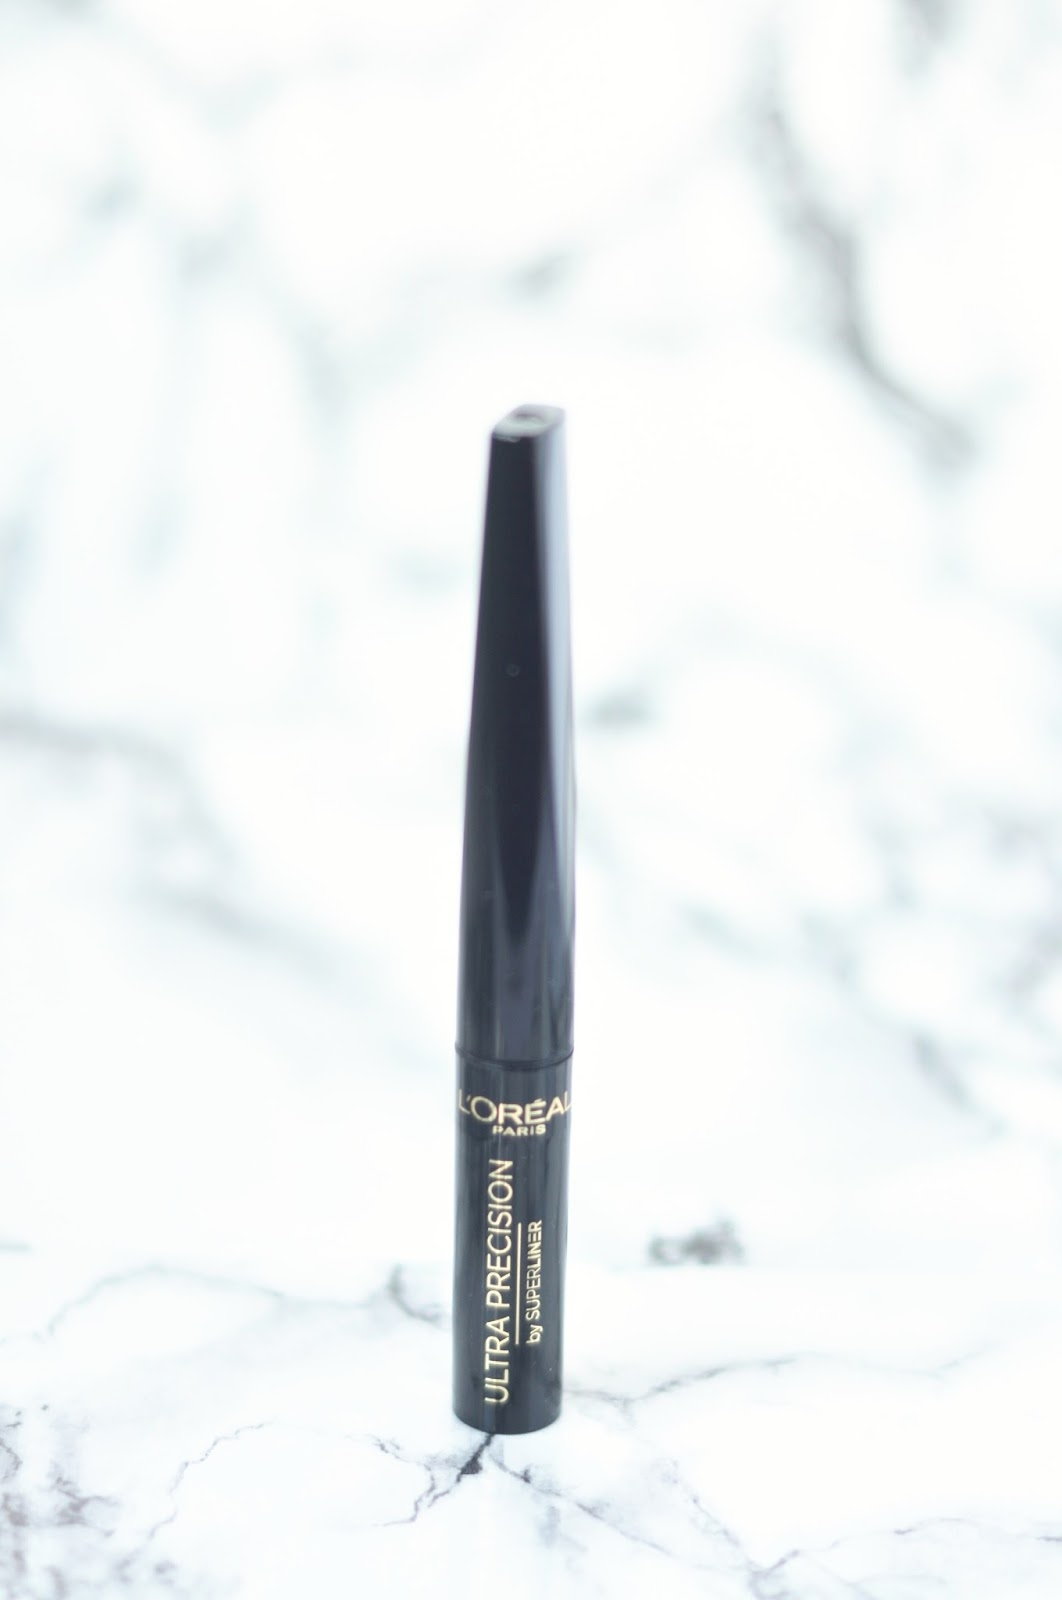 loreal ultra precision eyeliner review juoda plunksna lithuanian beauty blog, lithuanian blogger, lietuvos tinklaraštininkės, lietuvos blogerės, akių pavedimas, geriausi akių pavedimai